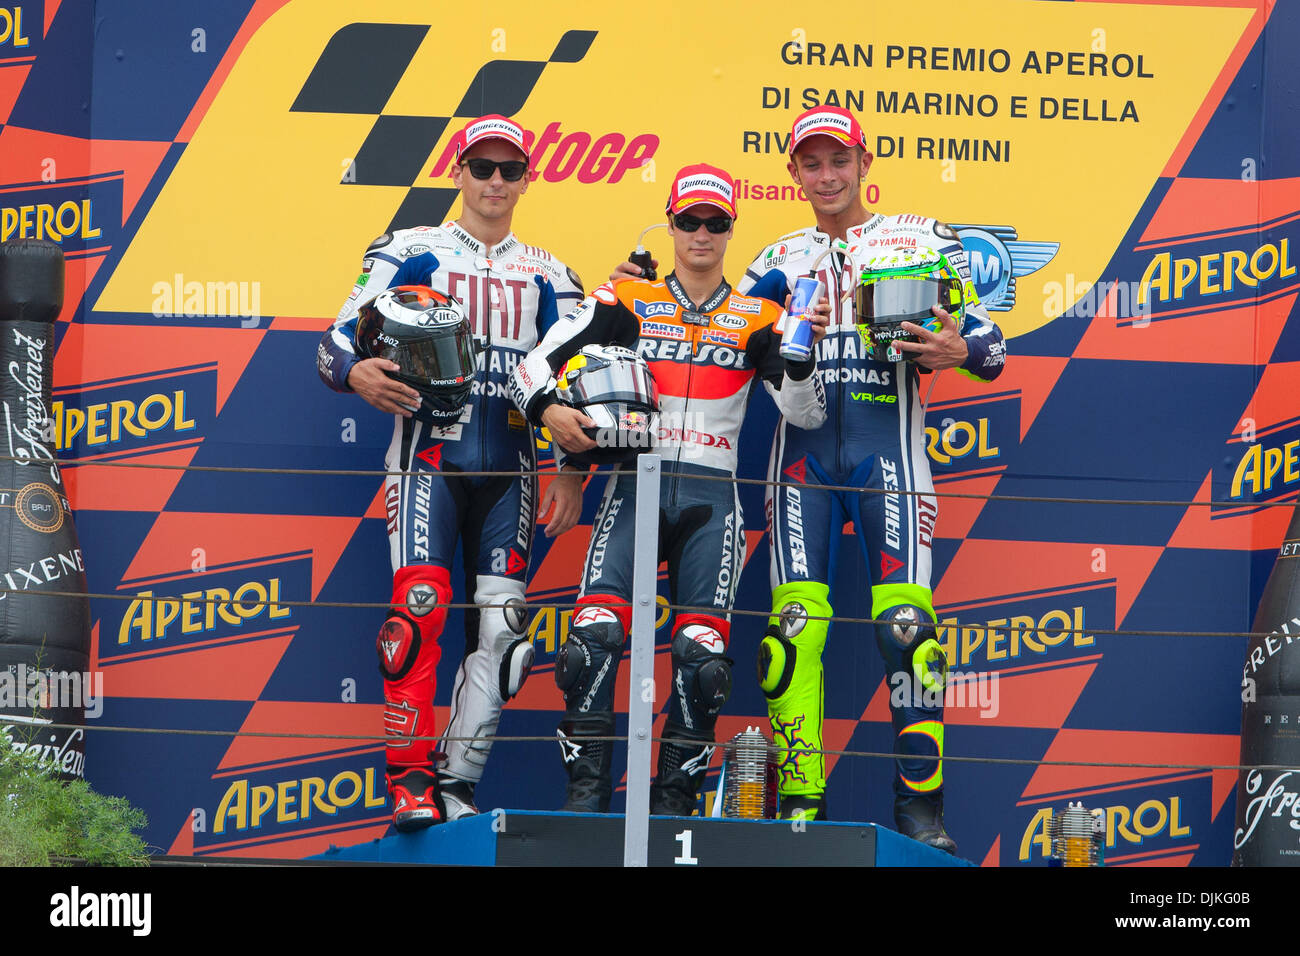 Sep. 05, 2010 - Misano Adriatico, Italy - Race podium, from left Jorge Lorenzo (2nd place), Dani Pedrosa (Winner) and Valentino Rossi (3rd place) (Credit Image: © Andrea Ranalli/Southcreek Global/ZUMApress.com) - Stock Image